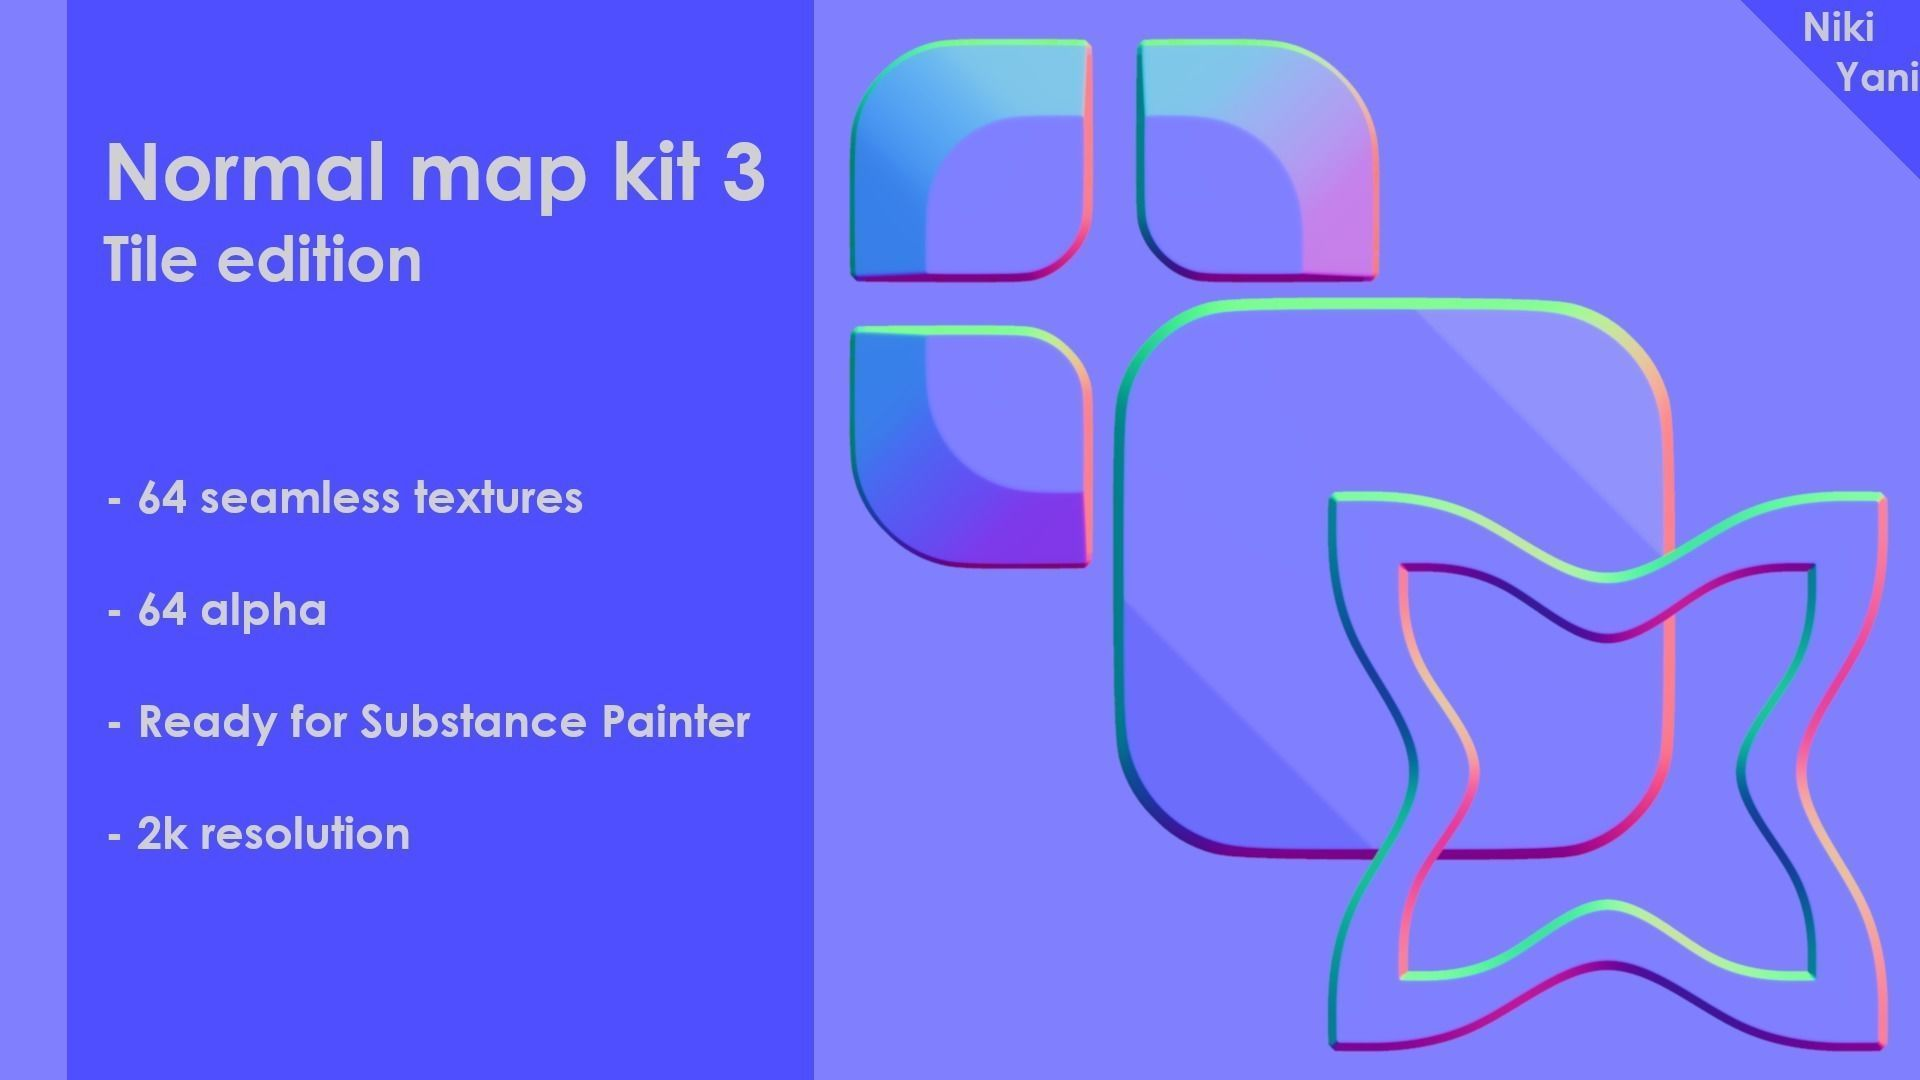 Normal map kit 3 Tile edition | Texture